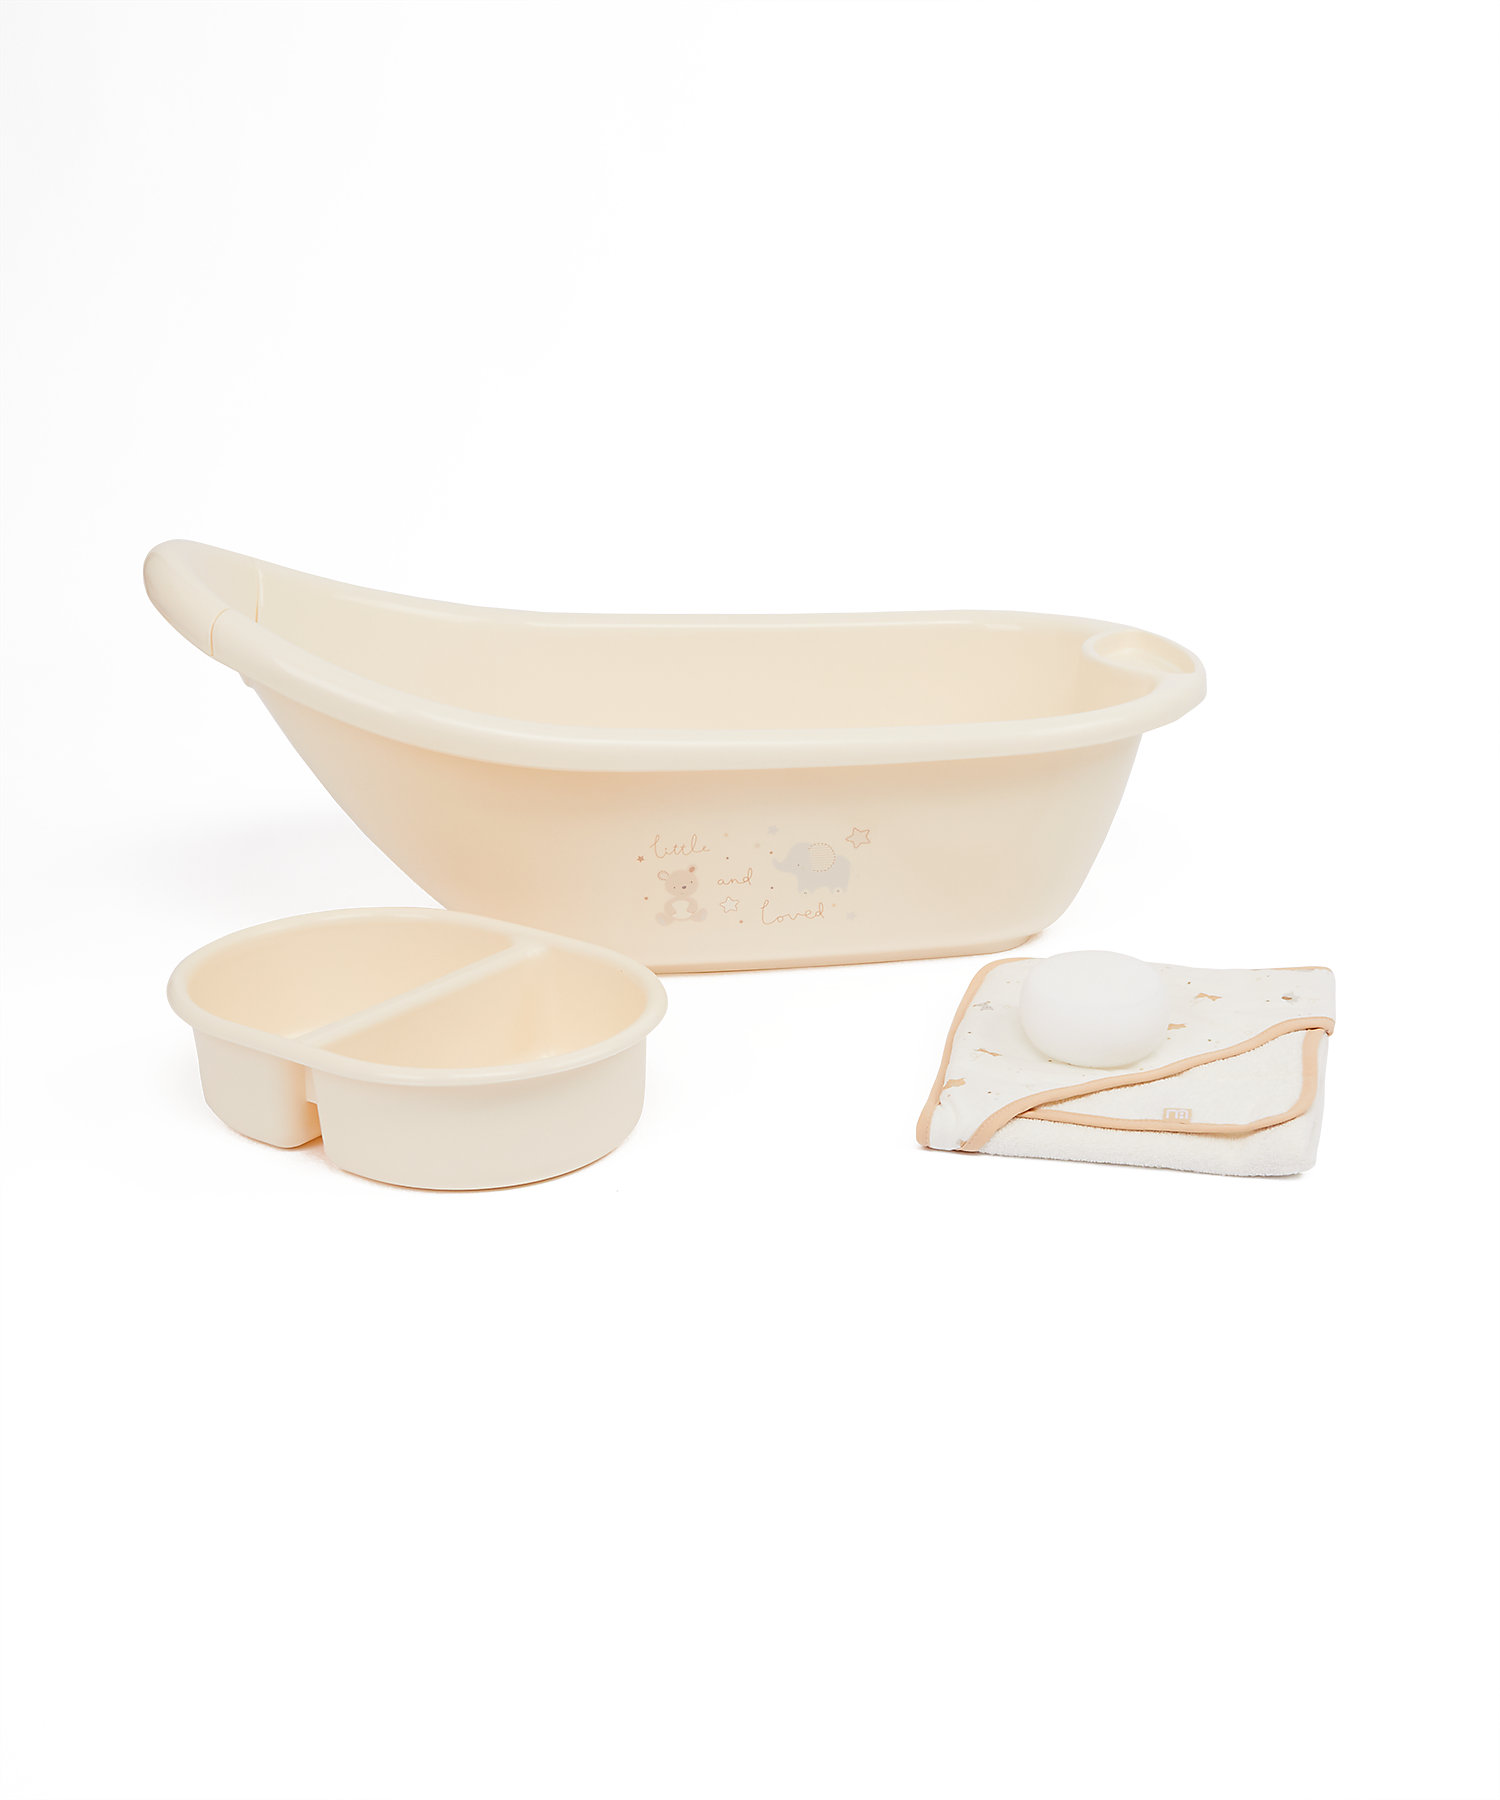 Mothercare | Mothercare Little And Loved Bath Stands & Box Cream